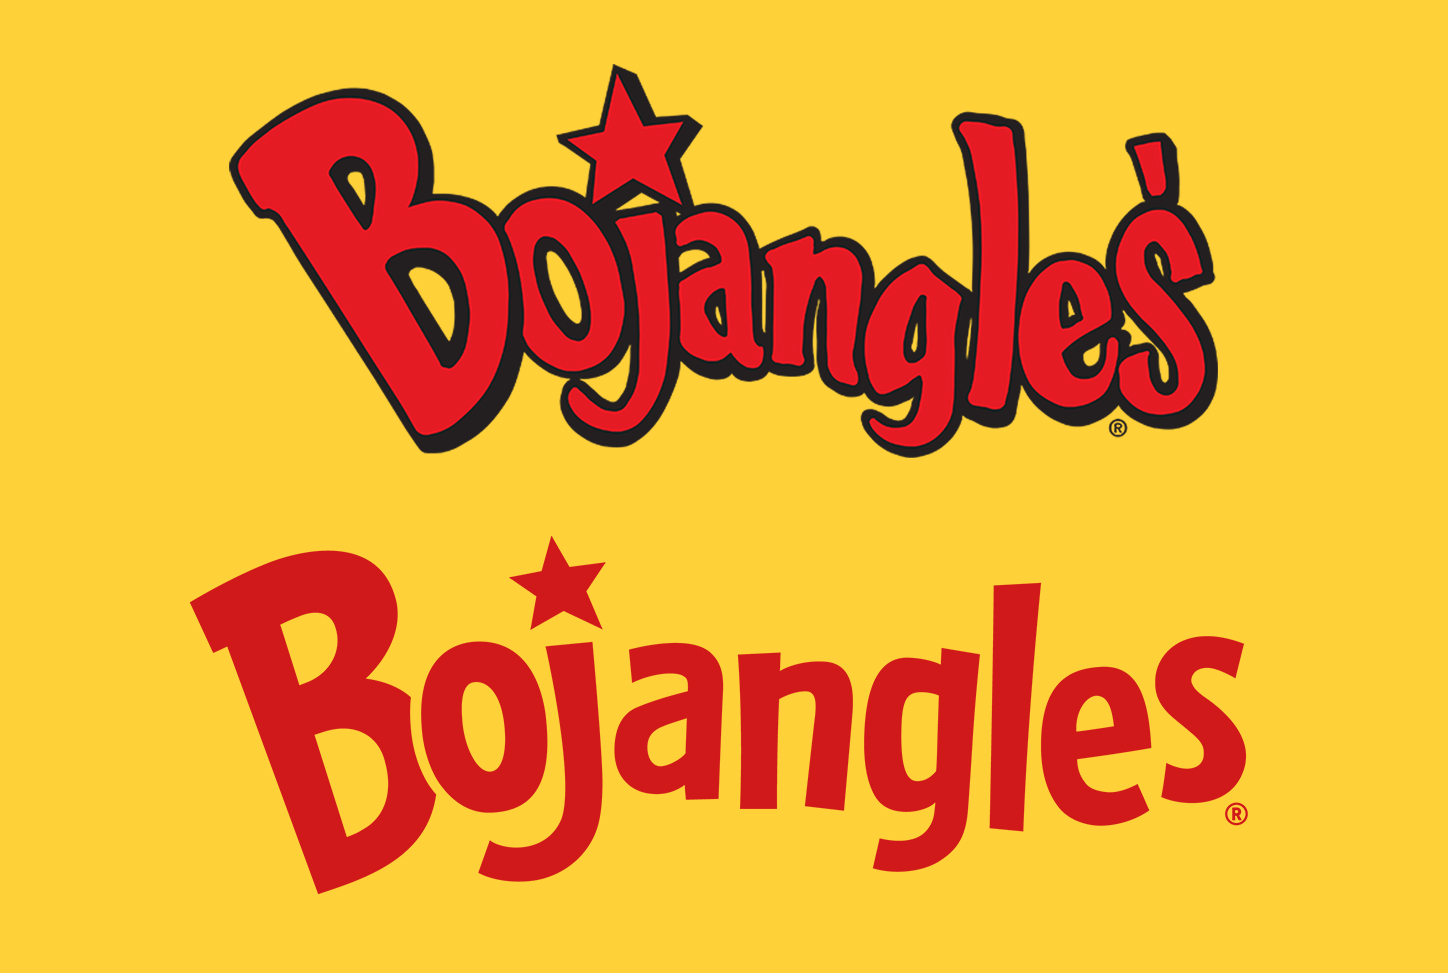 Bojangles wants to rev up interest with a new look and Dale Earnhardt Jr. ads